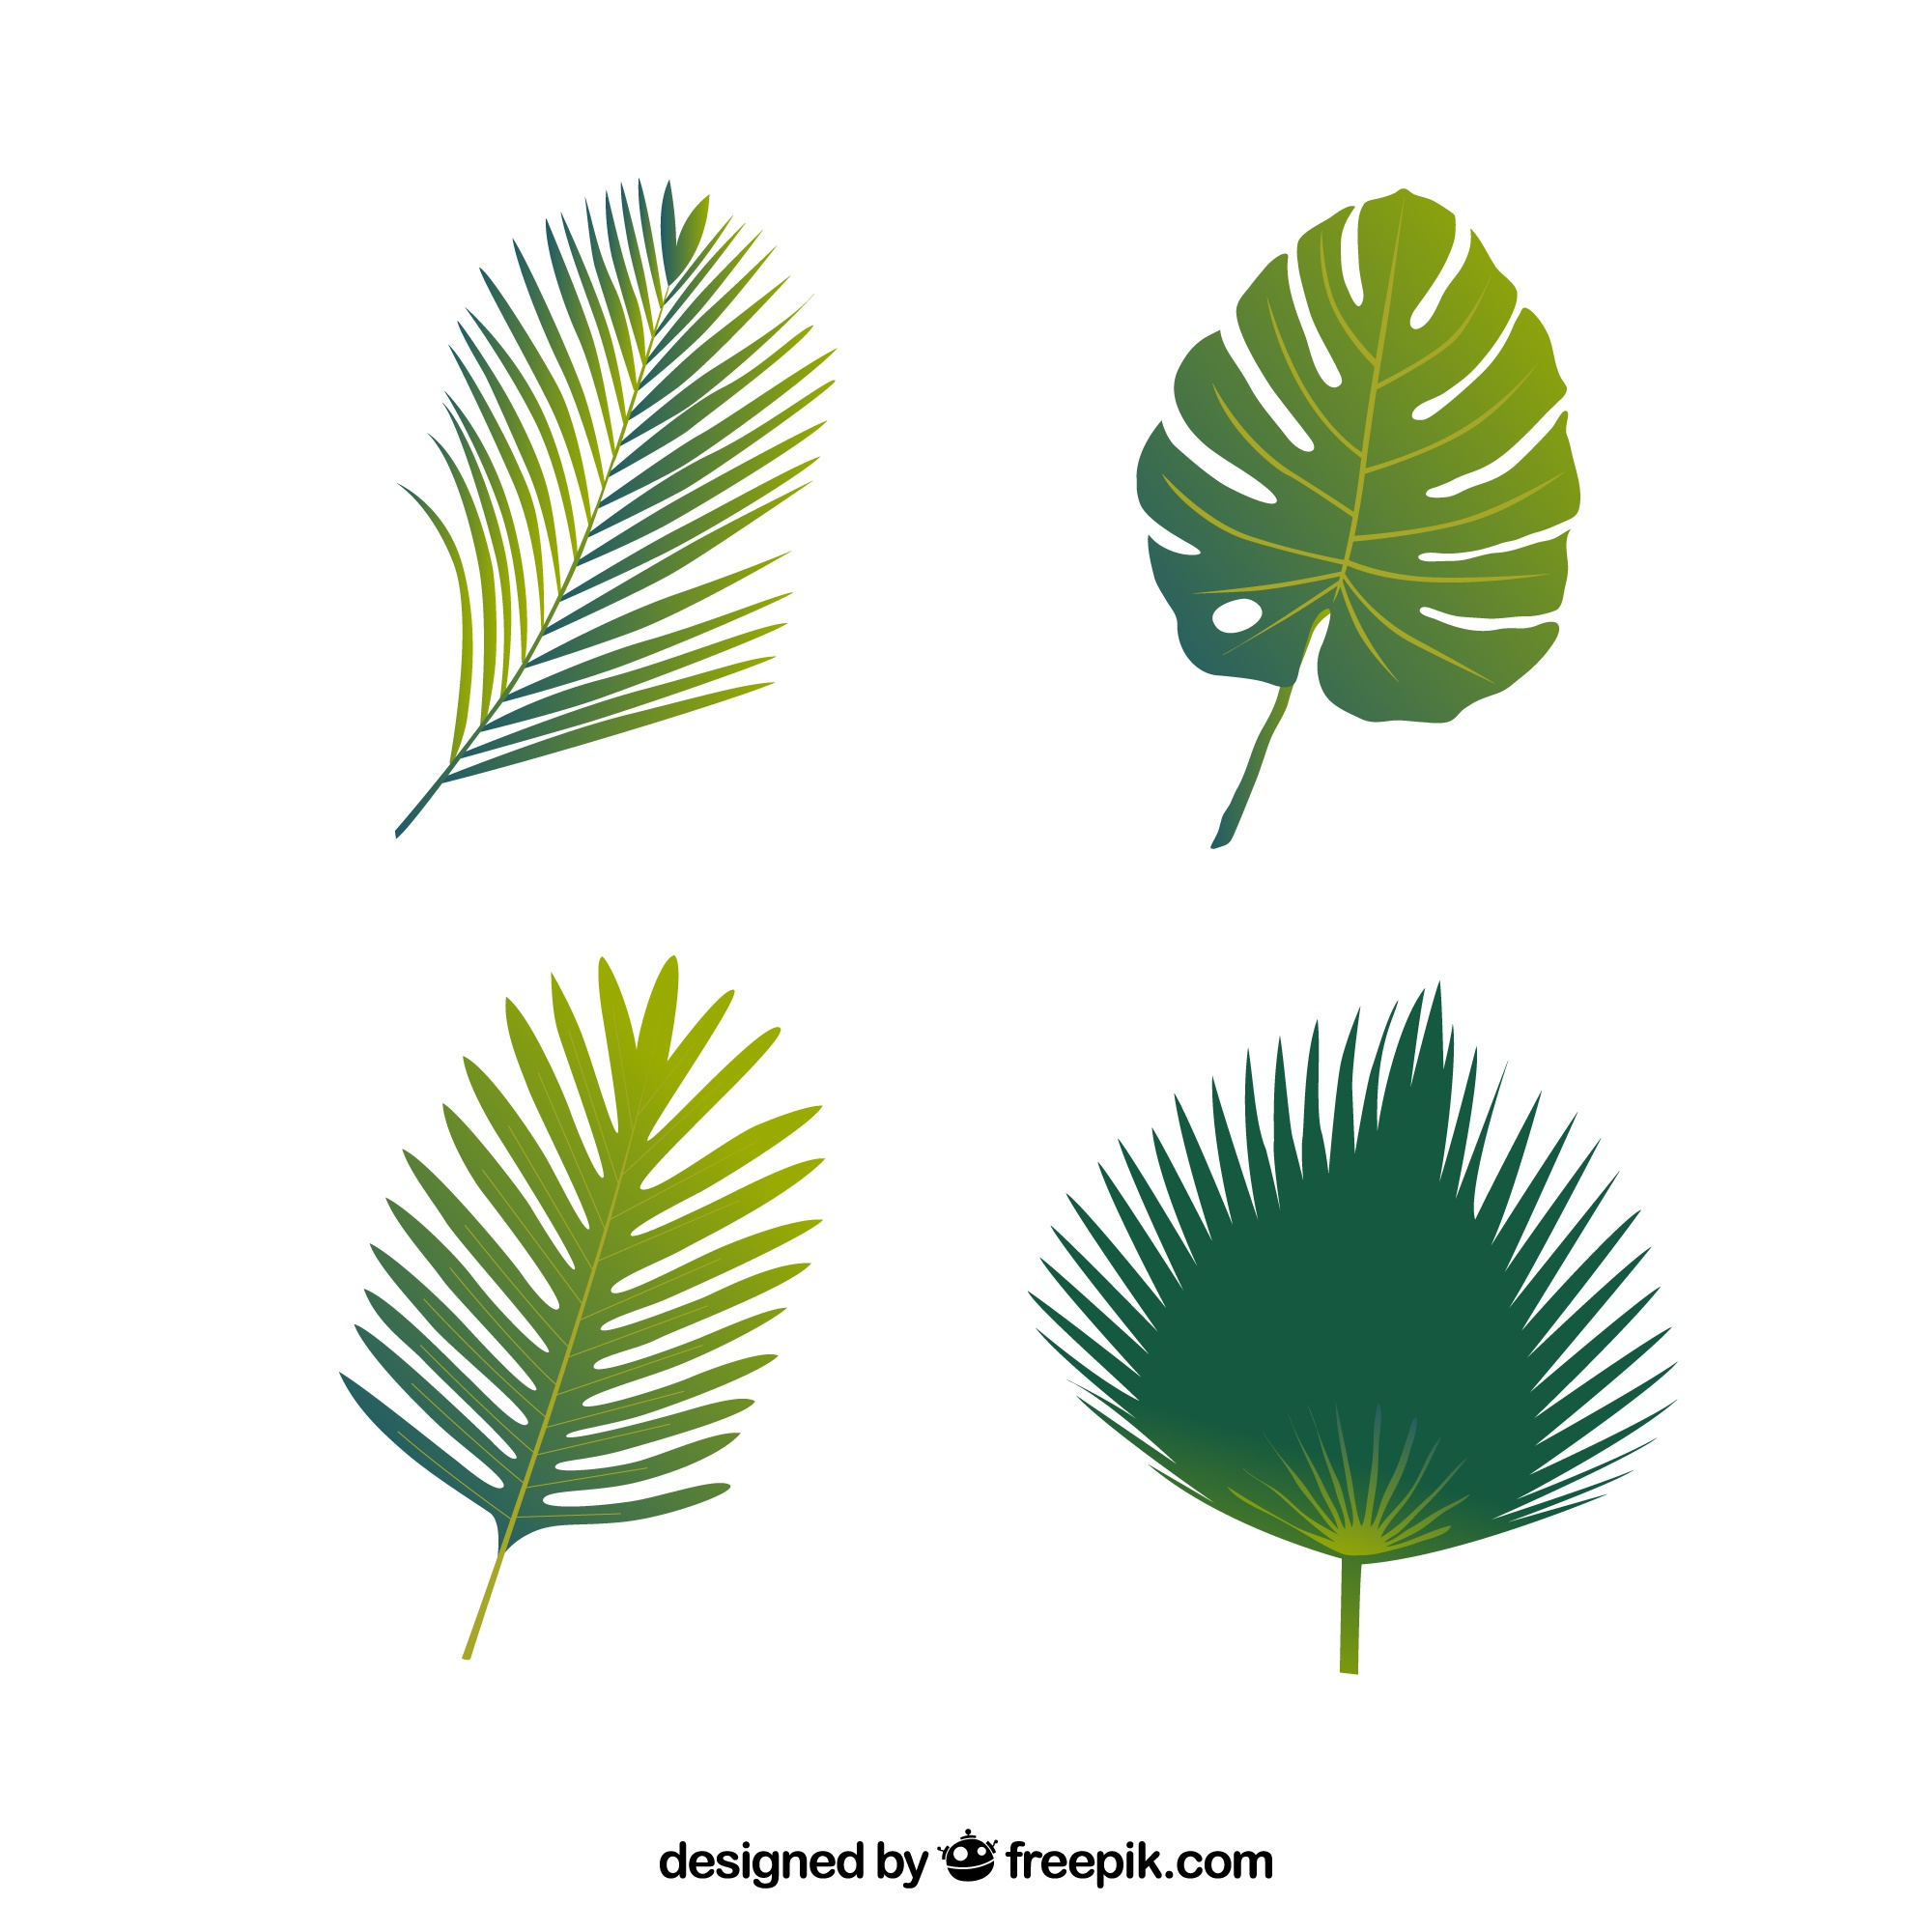 Four types of palm leaves